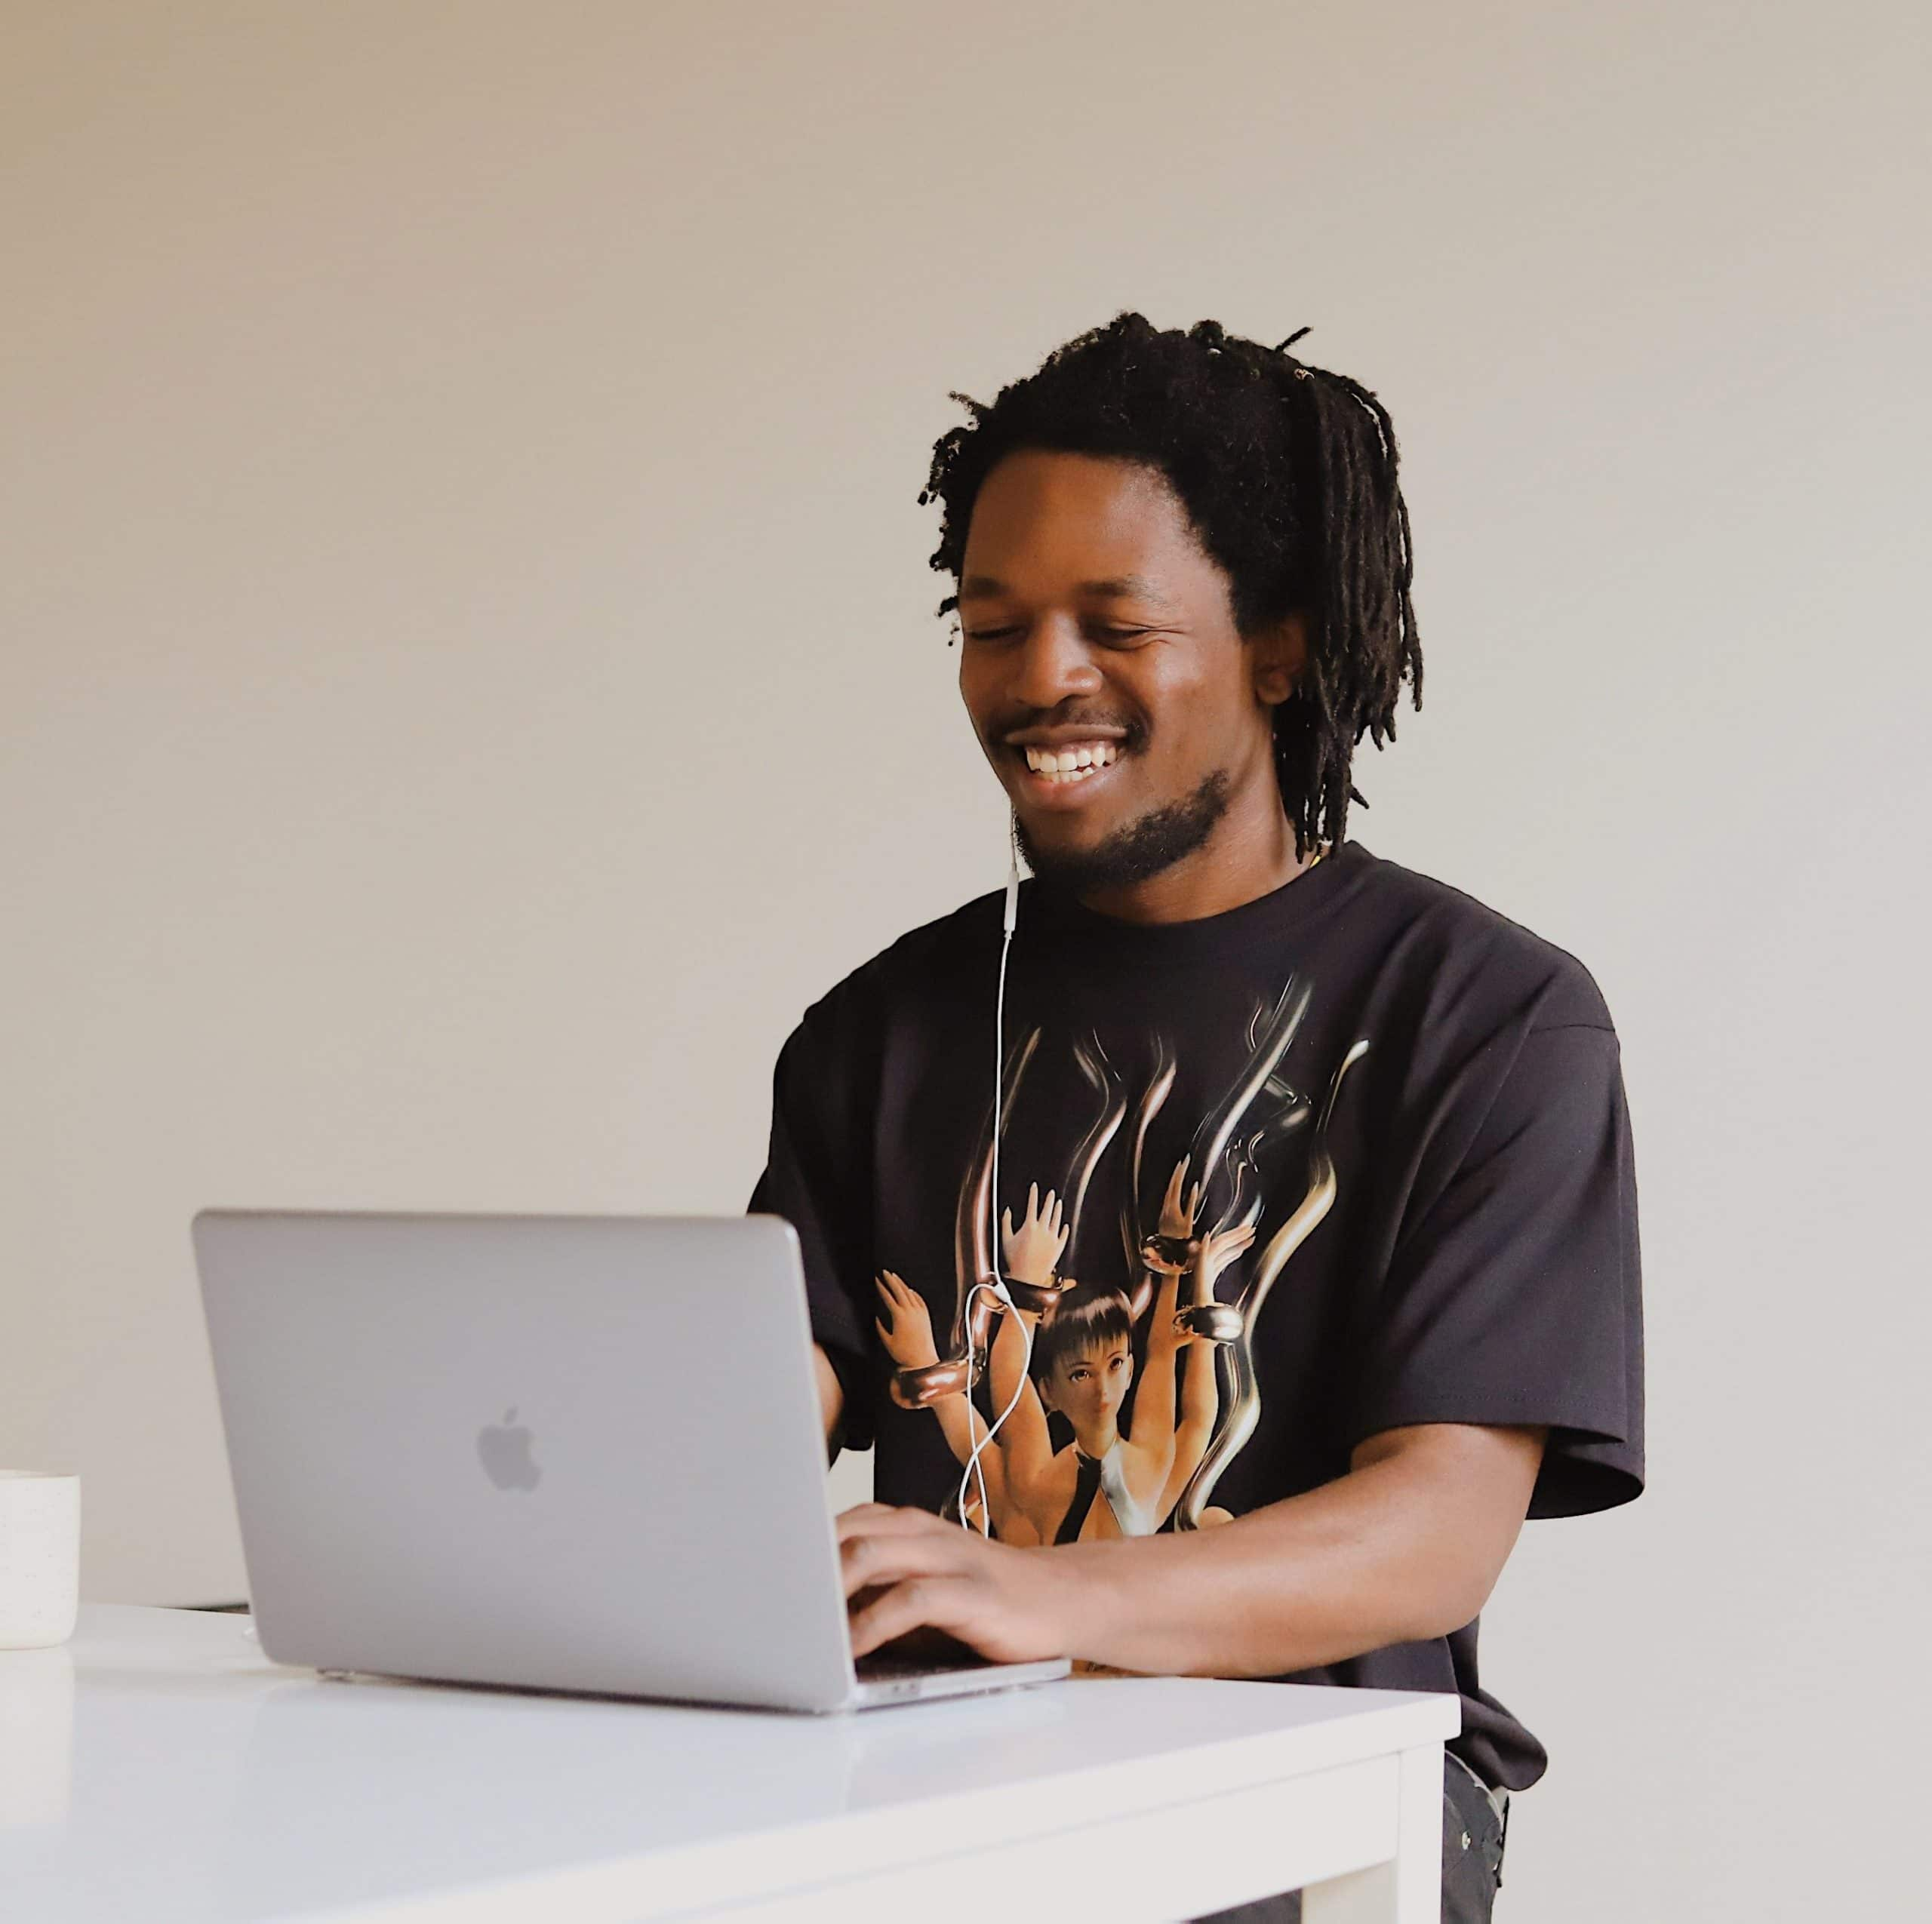 A young man smiles at his laptop during online therapy.